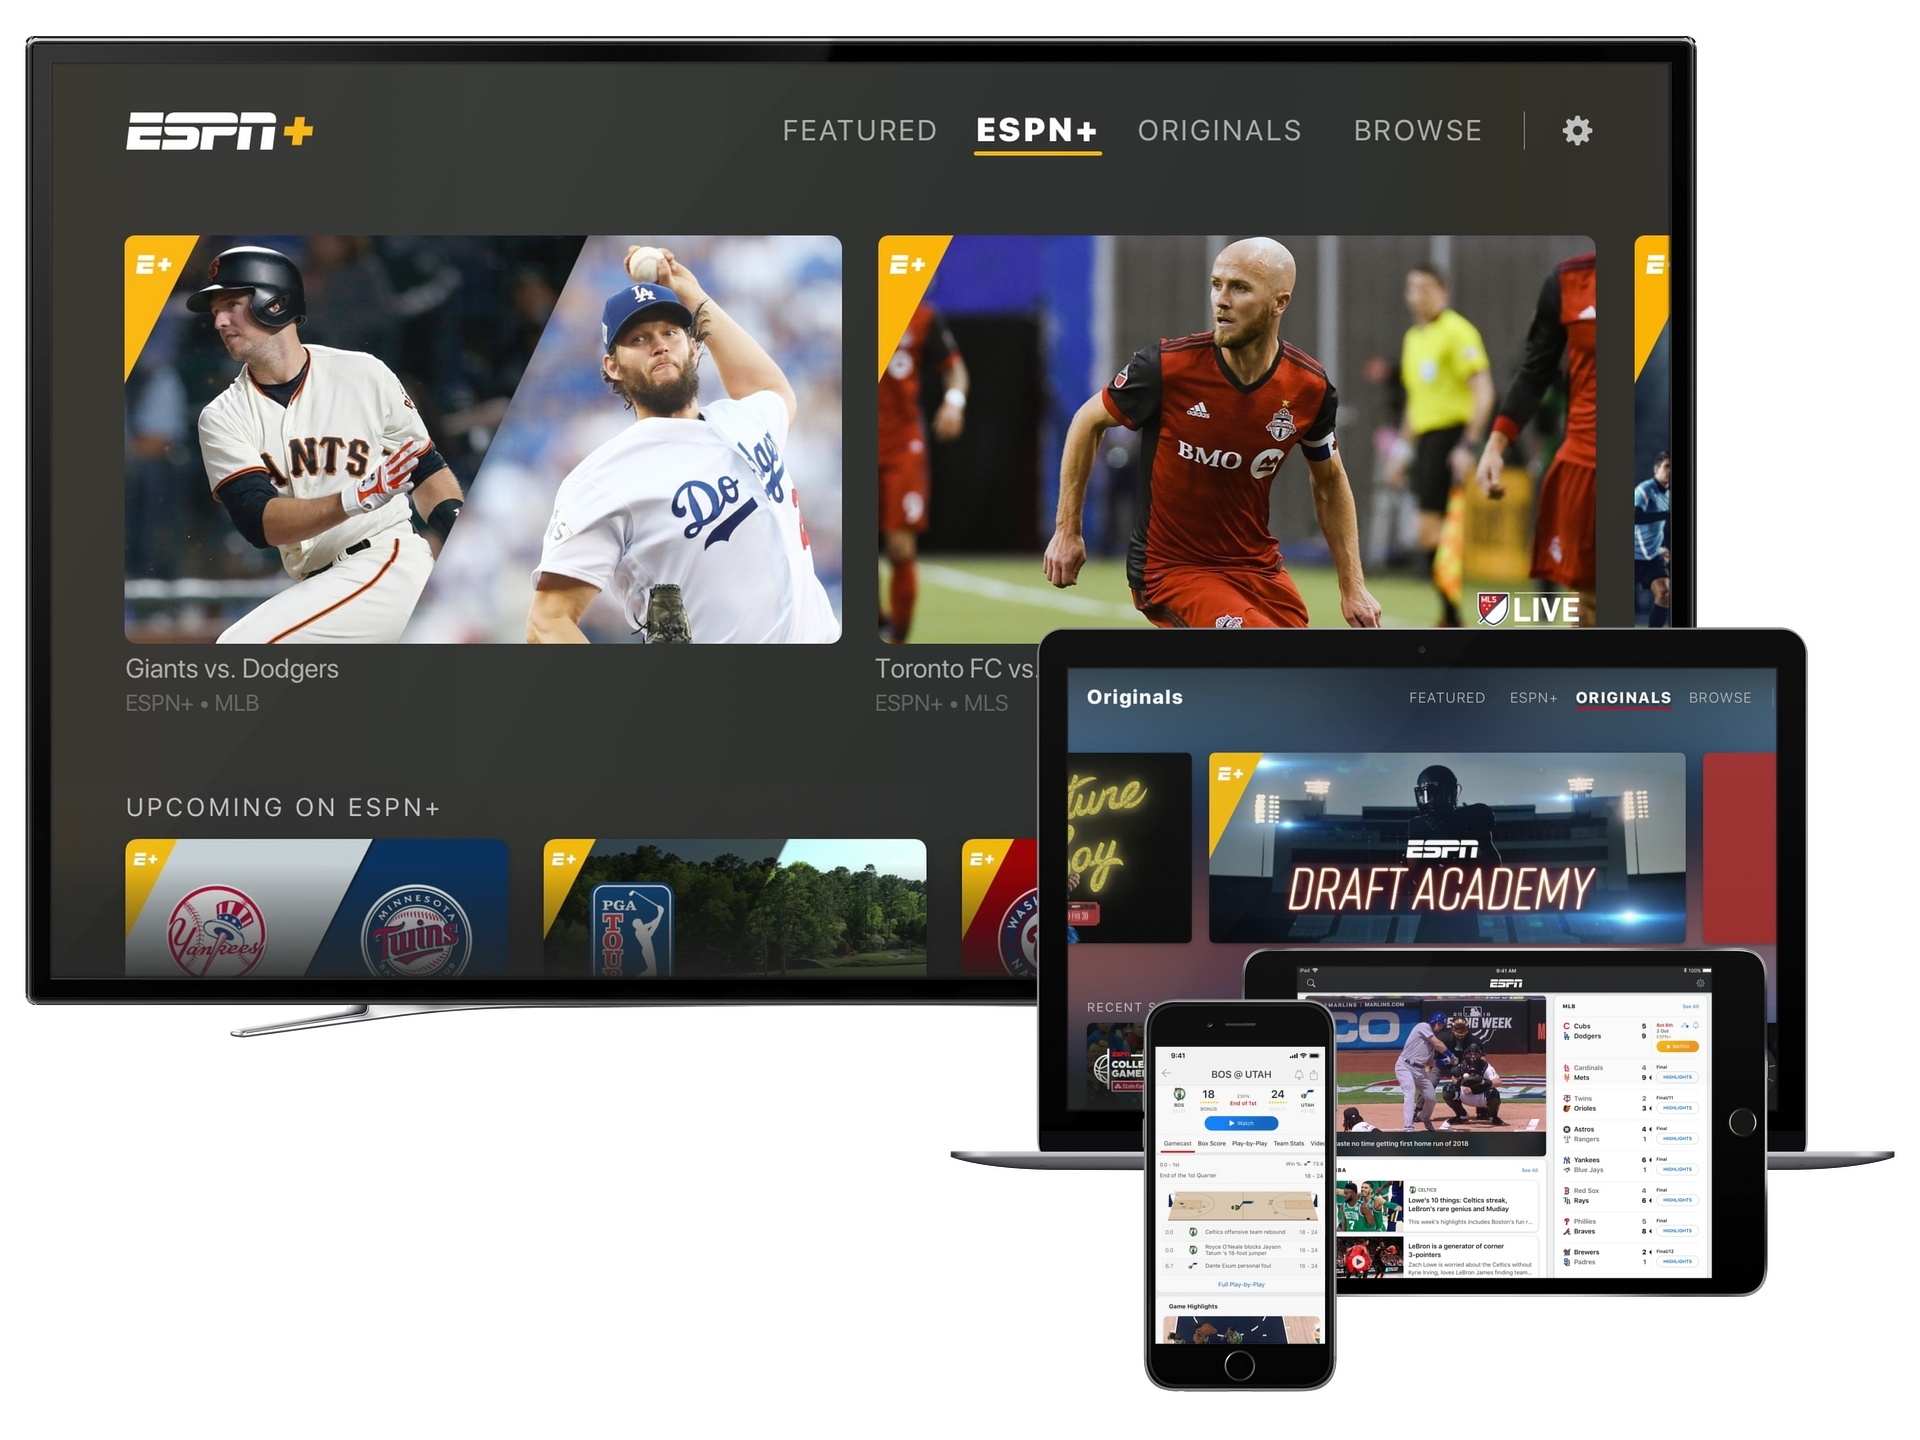 New Re Imagined Espn App With Espn Direct To Consumer Streaming Service Launches To Sports Fans Today Business Wire